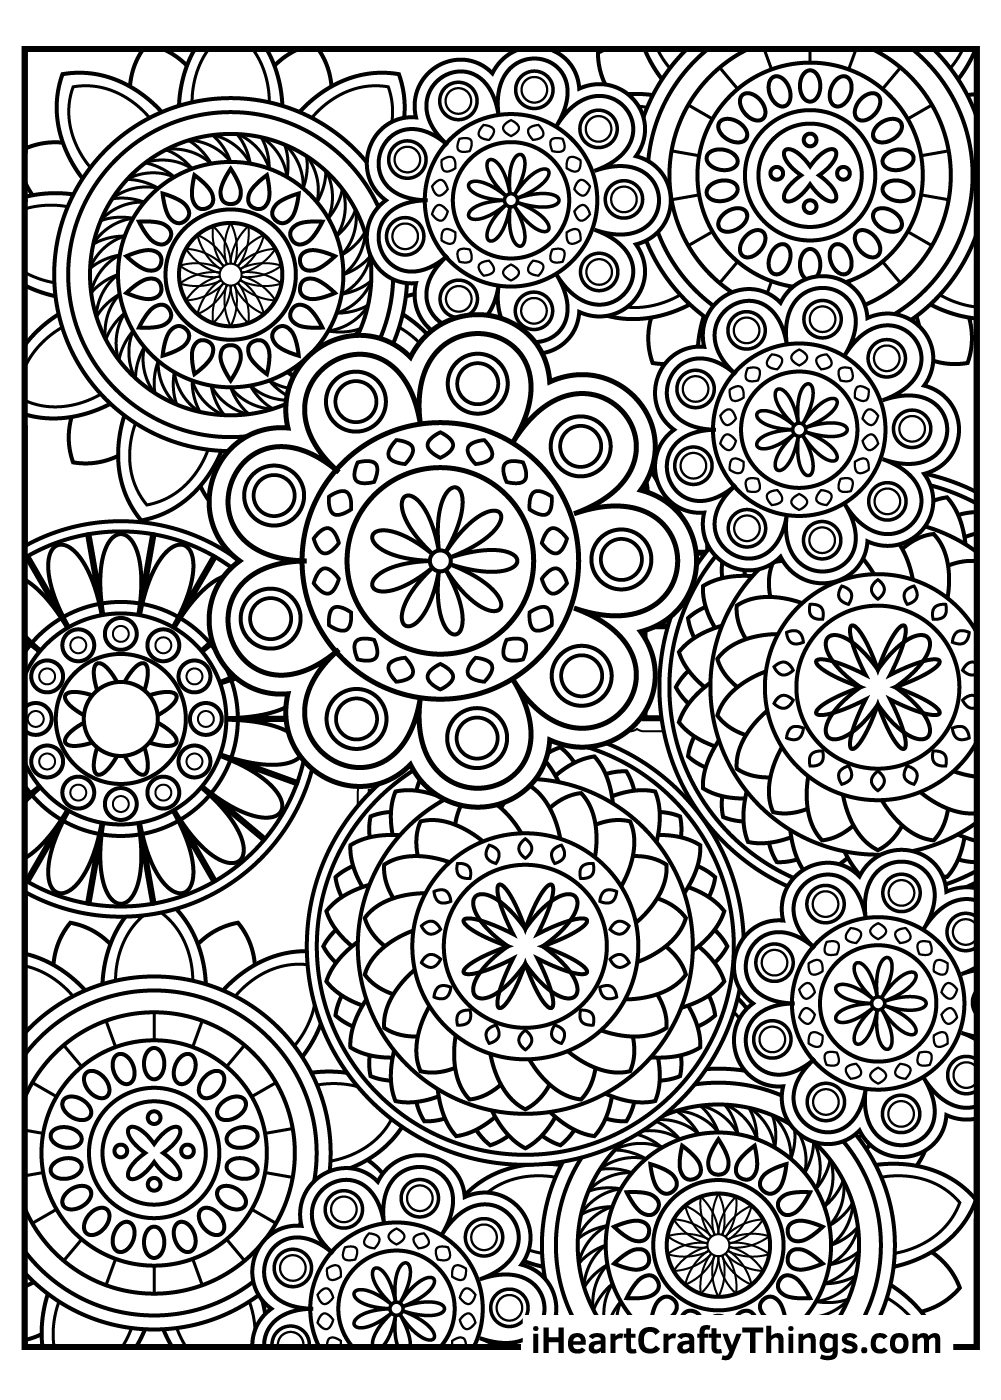 valentine's day mandala coloring pages free download